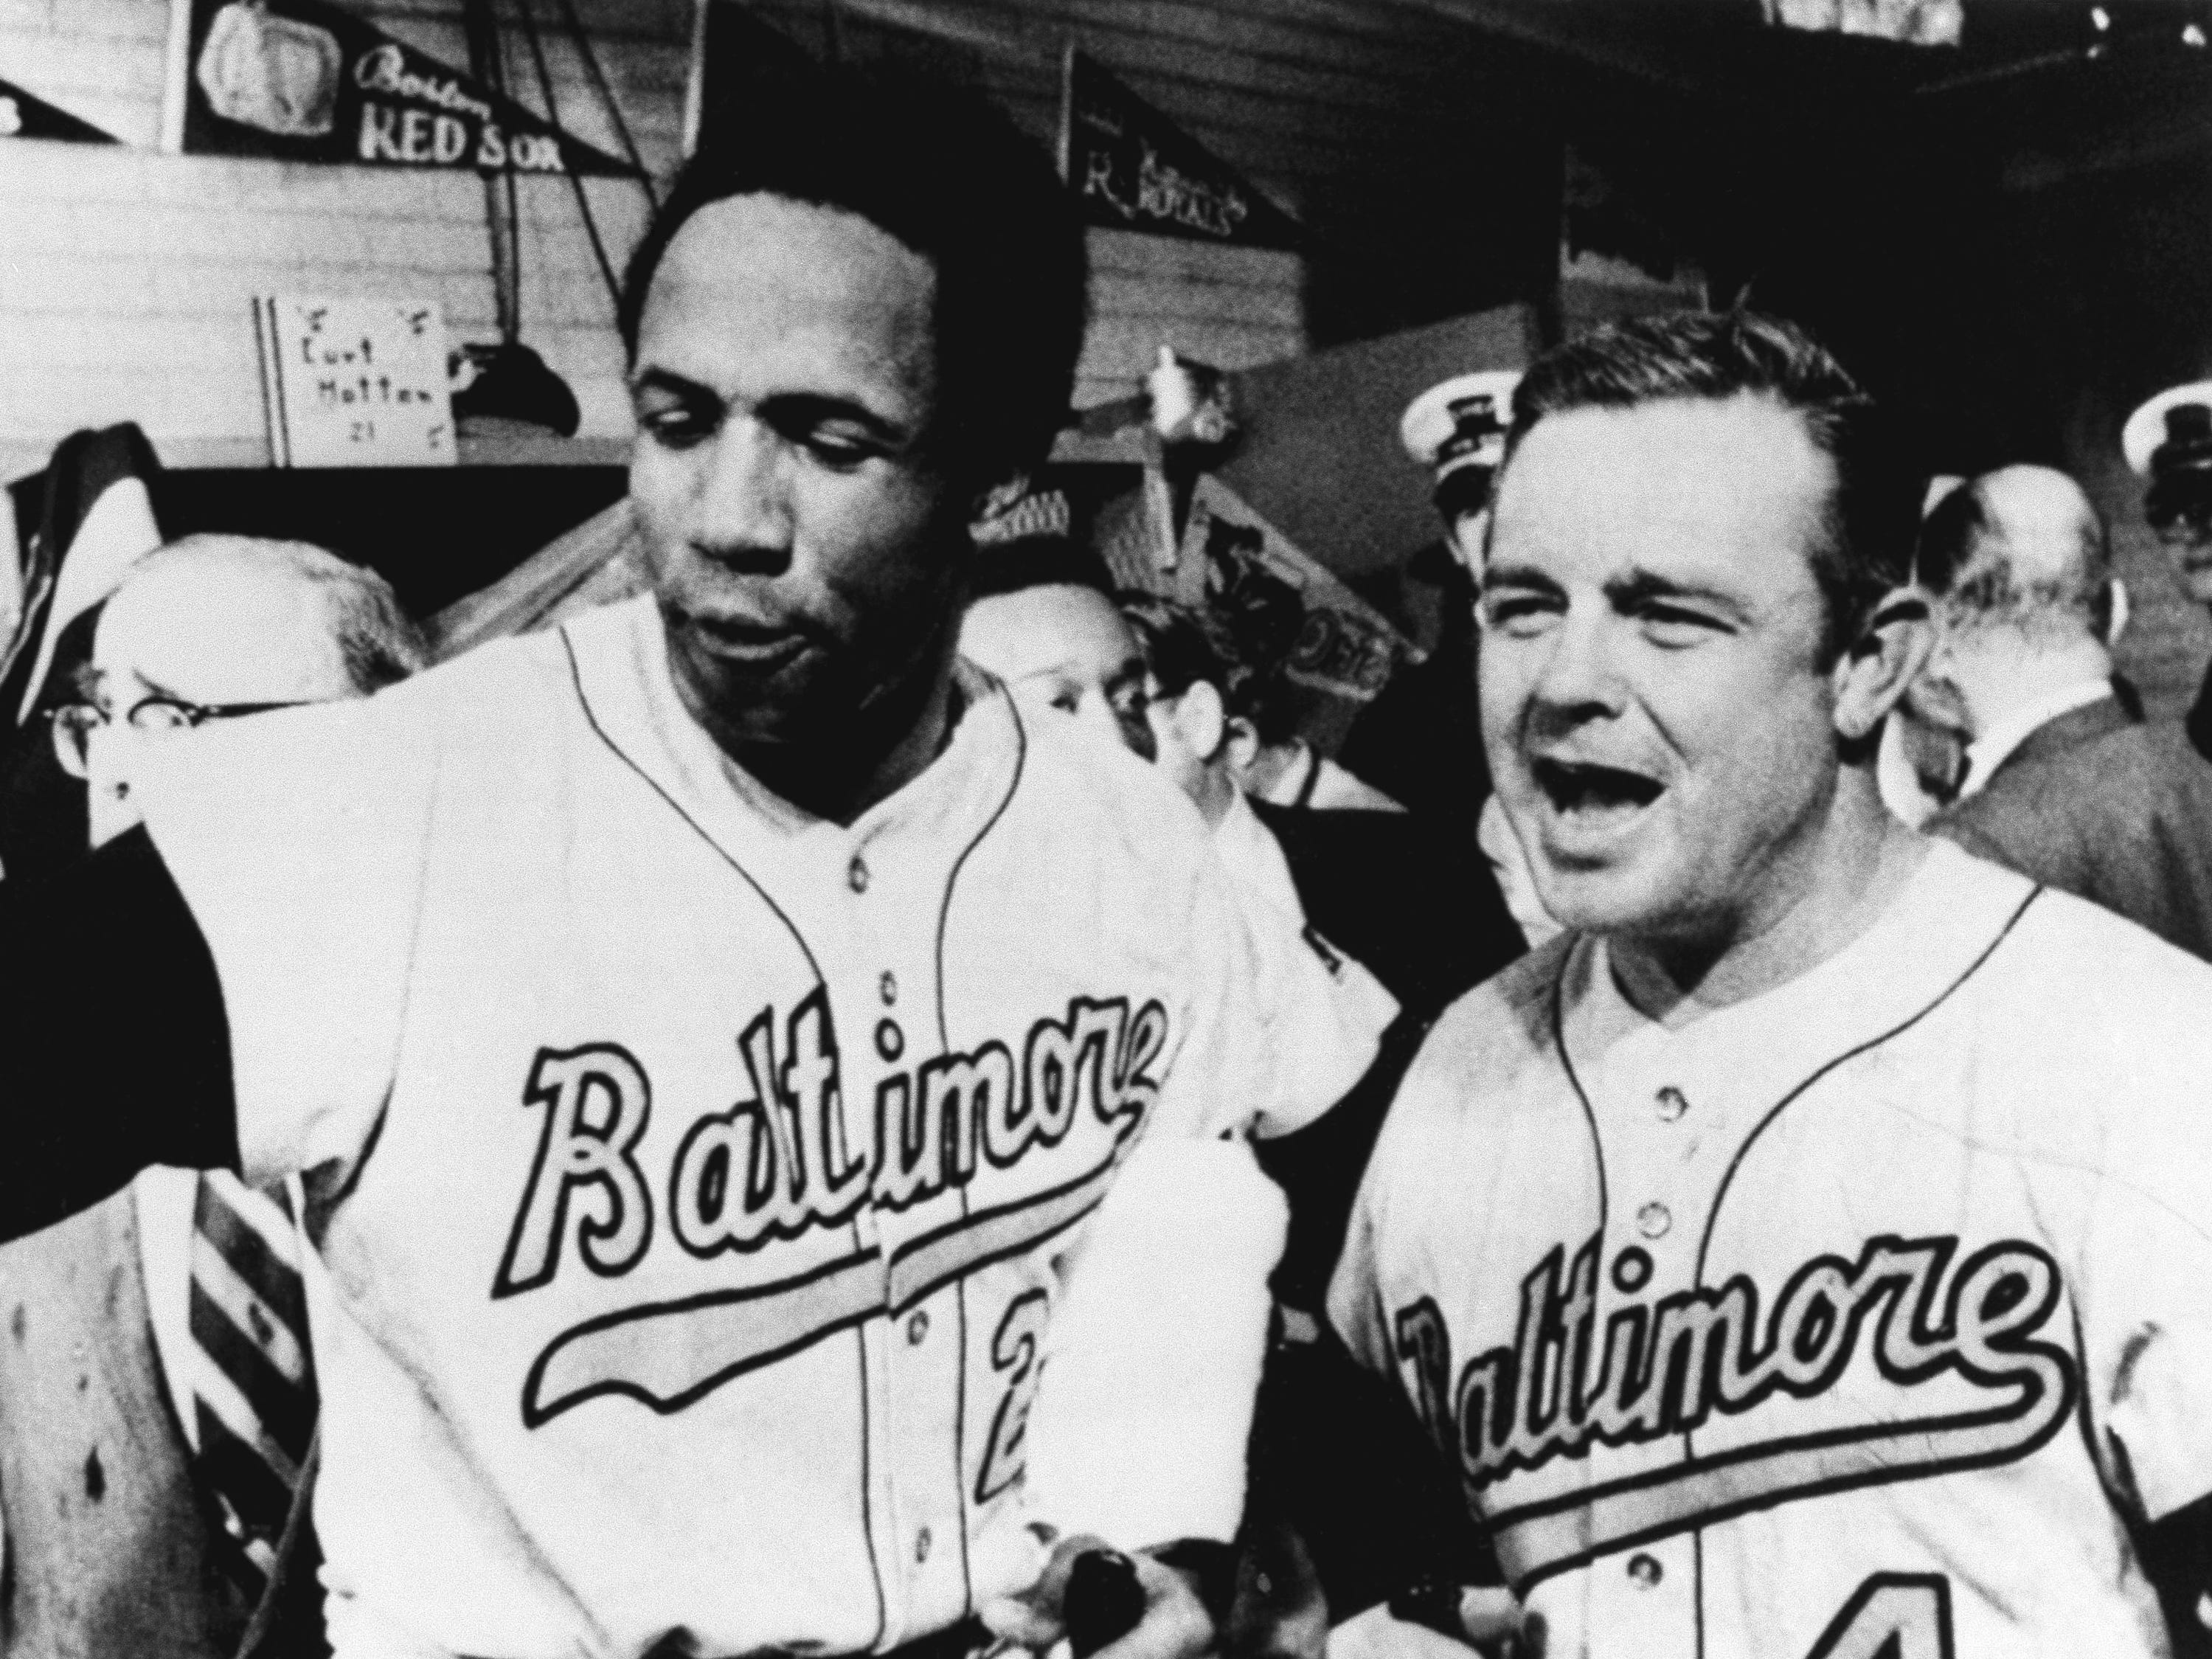 Orioles manager Earl Weaver, right, and outfielder Frank Robinson celebrate following Baltimore's win over the Minnesota Twins to win the American League pennant in 1986.